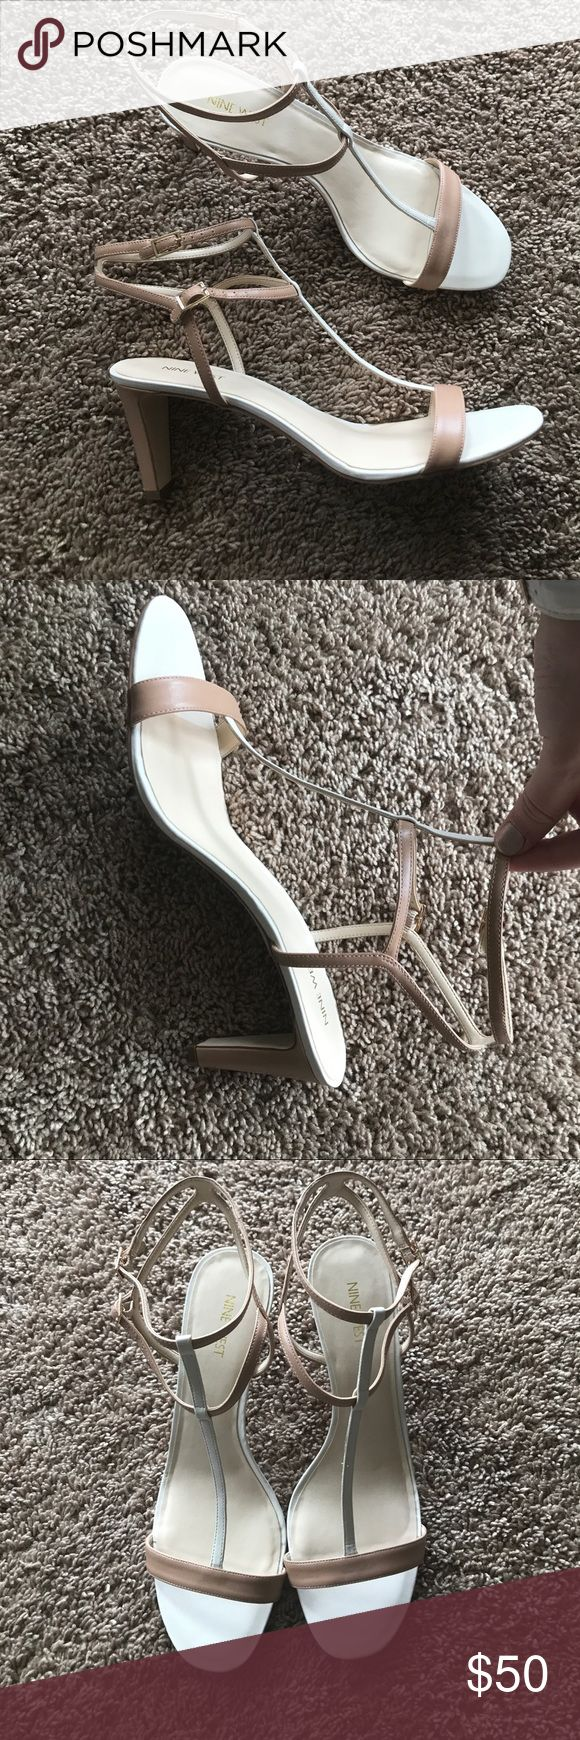 NWOT Nine West strappy heels Natural tan & cream strappy heels. Never worn!! Bought them for graduation but never ended up wearing them. Very elegant🎀 Fit true to size. Nine West Shoes Sandals